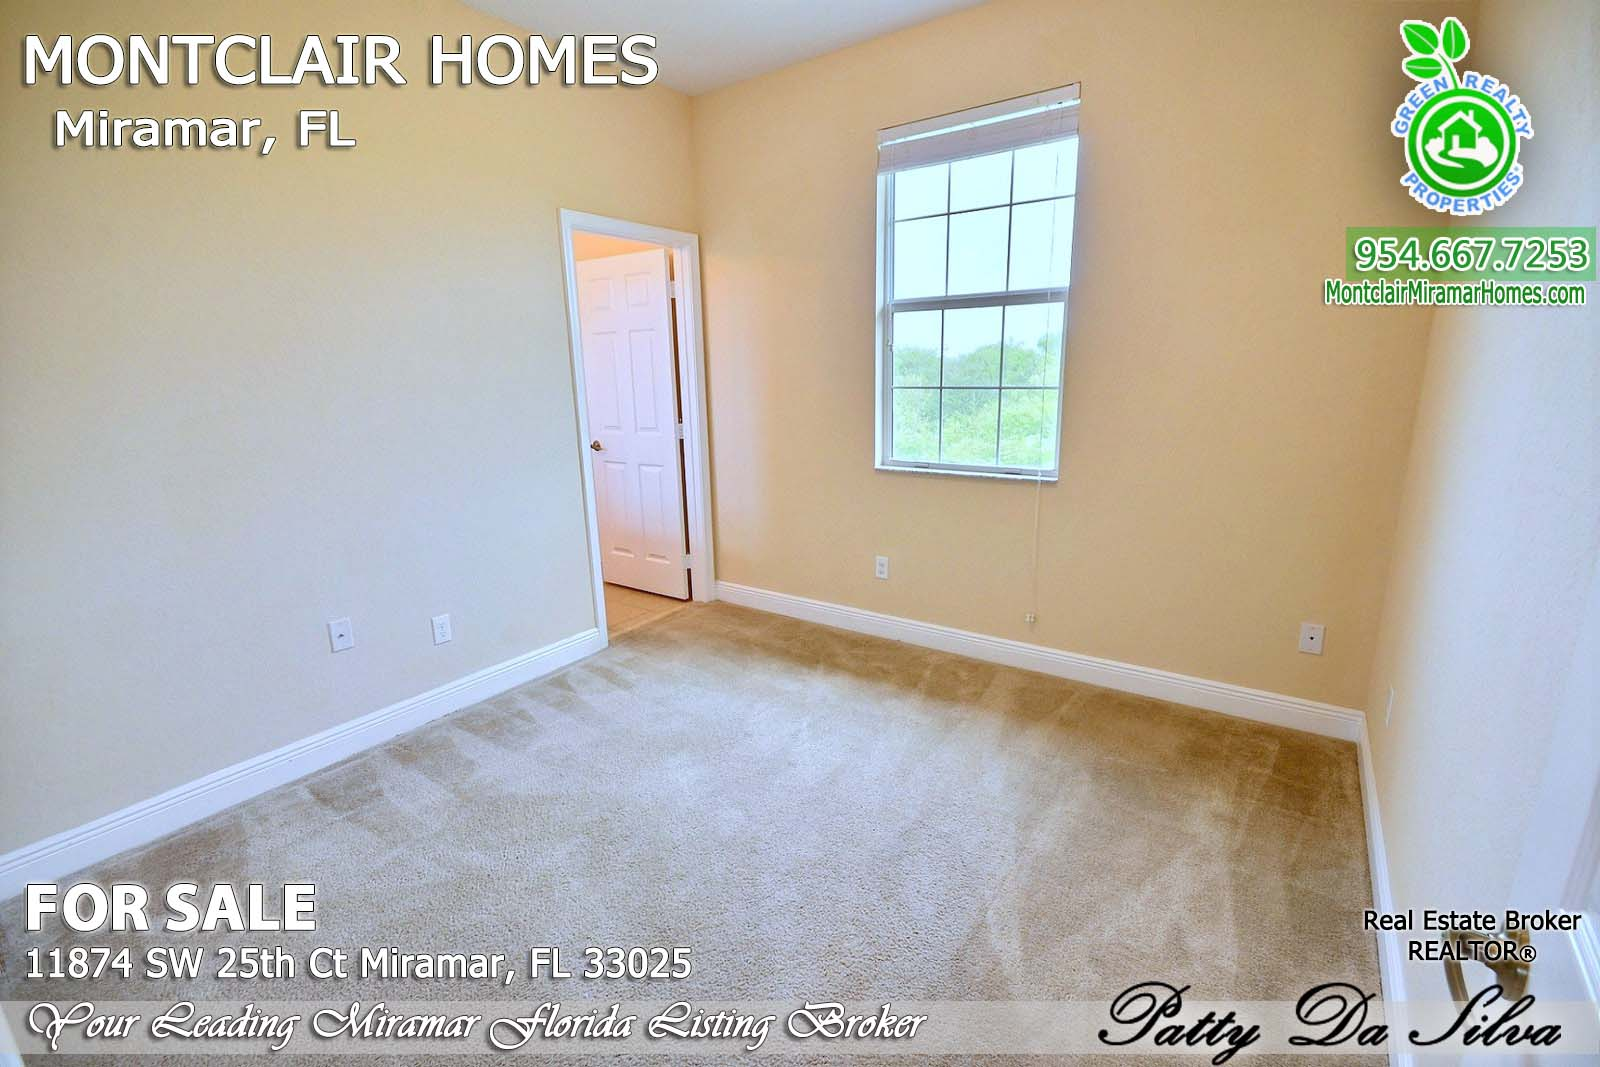 11874 SW 25 CT, Miramar FL 33025 - Montclair (14) - Copy